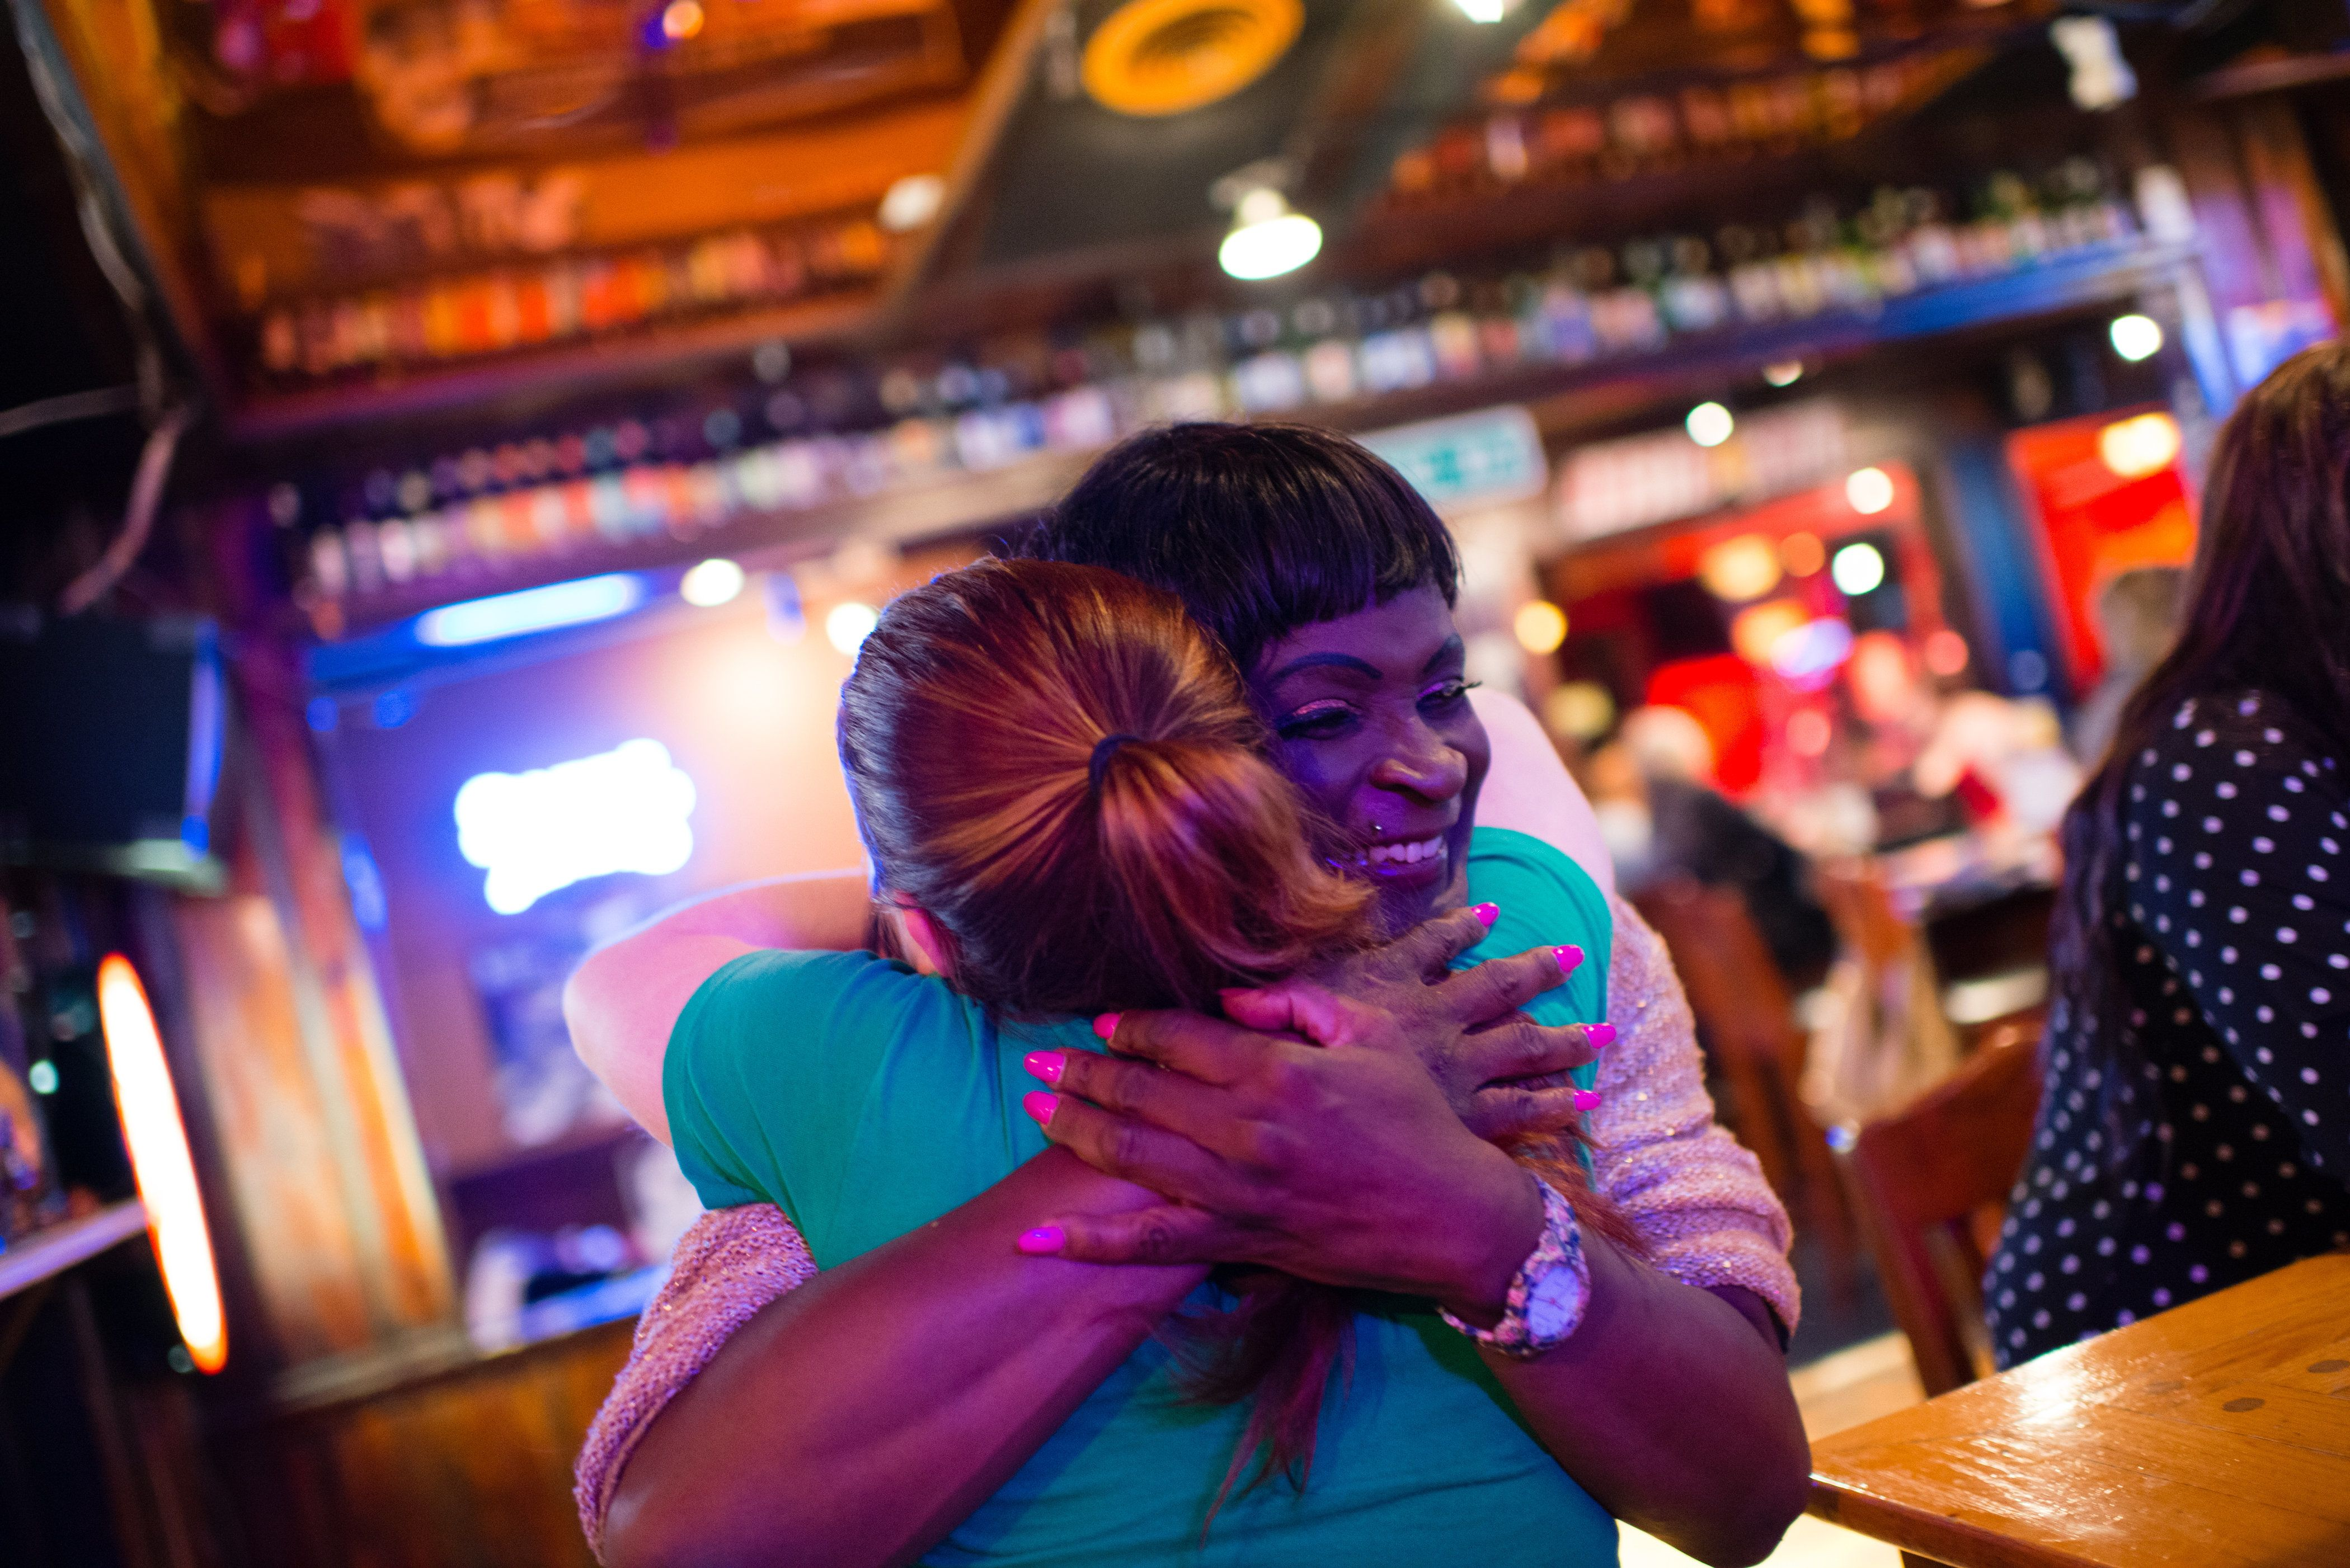 COLUMBIA, MD - JUNE 27:  Sara Simone is a transgender woman living in Alexandria, VA. She transitioned from male to female in 2011.  She is pictured at Second Chance Saloon in Columbia, MD where she met with some friends. Simone give a big hug to Sydney McFadden, of College Park. When Simone was homeless, McFadden came to her aid and let her stay in her apartment. (Photo by Sarah L. Voisin/The Washington Post via Getty Images)